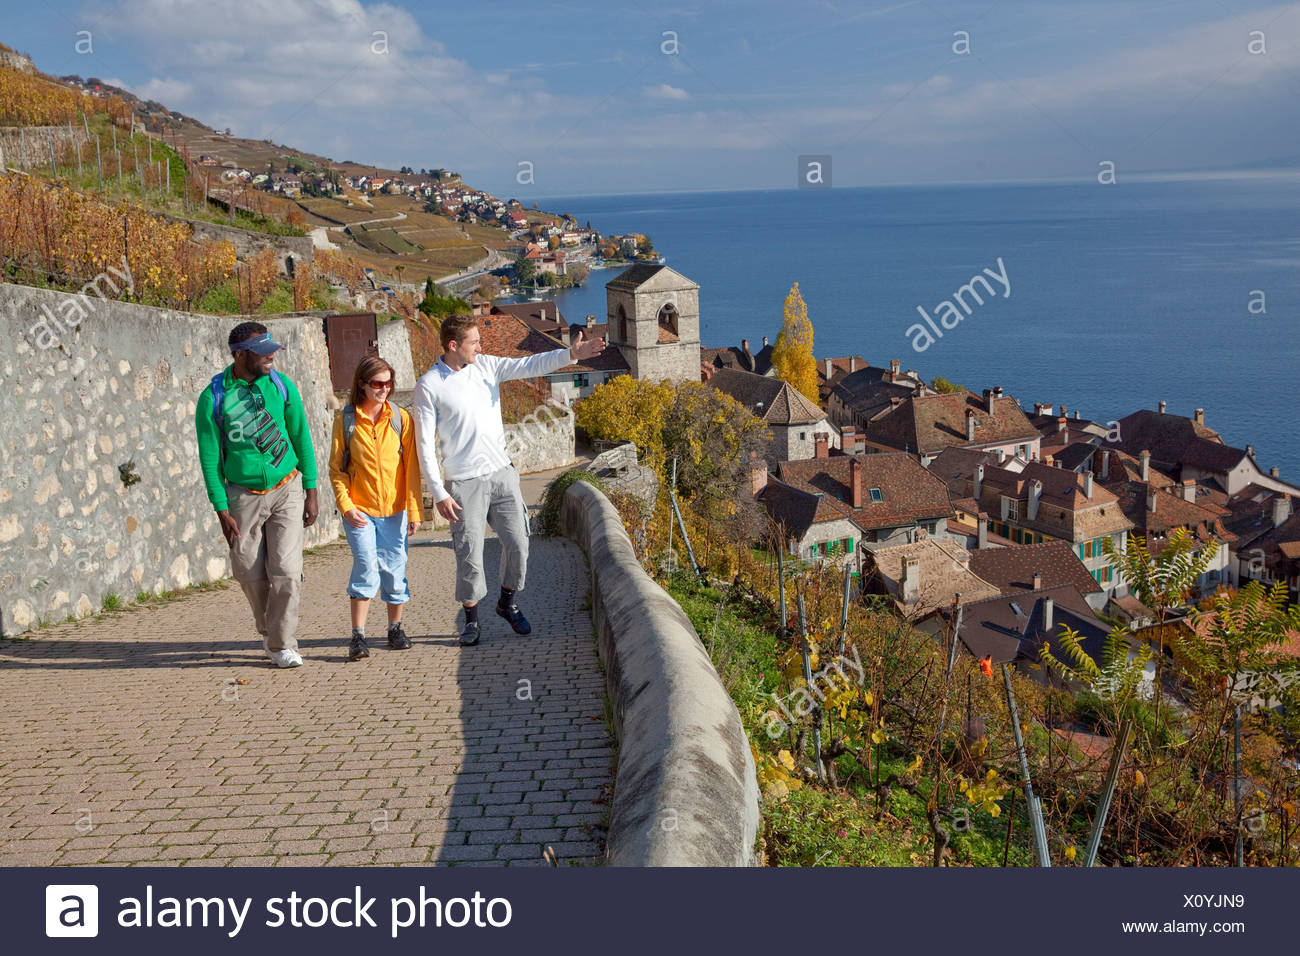 Traveller, Saint Saphorin, Lavaux, autumn, Castle, lake, lakes, canton, VD, Vaud, Lac Leman, wine, shoots, wine, footpath, walki - Stock Image